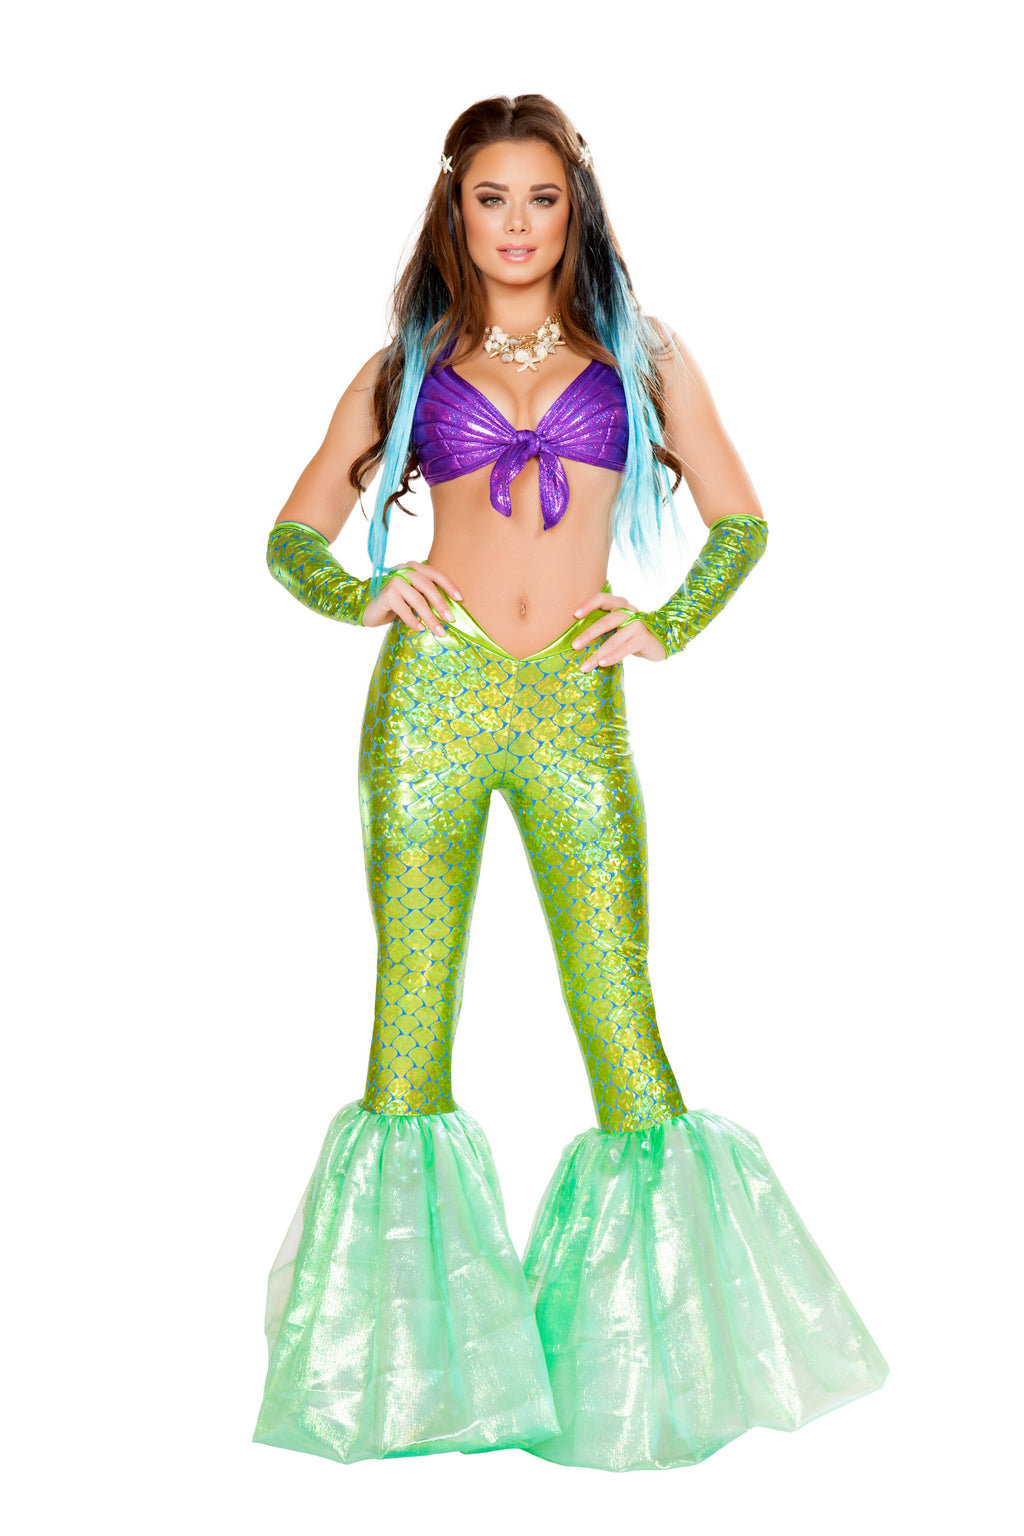 2-Piece-Mermaid-Sea-Siren-Purple-Top-&-Green-Bell-Bottoms-Party-Costume